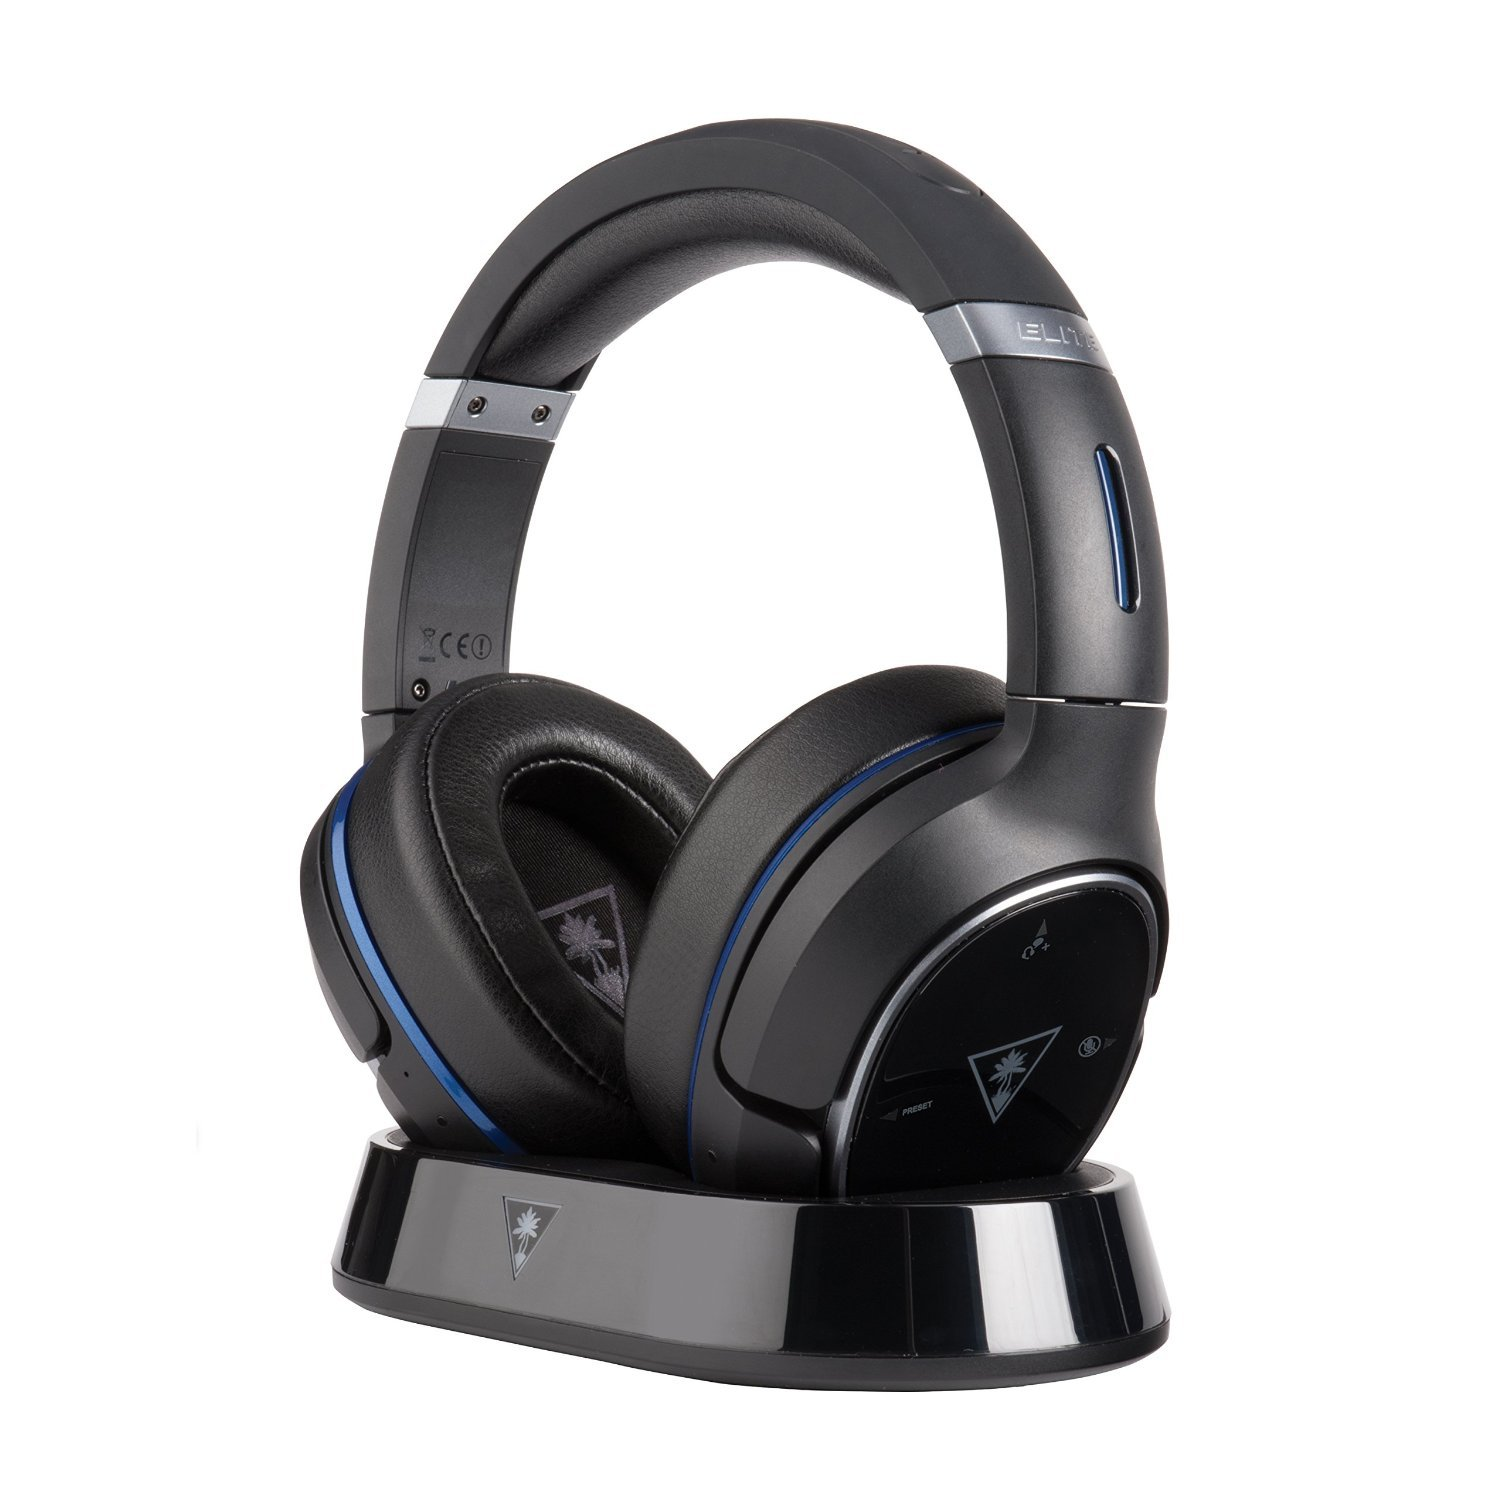 Turtle Beach Elite 800 Gaming Headset (PS4 & PS3) for PS4 image